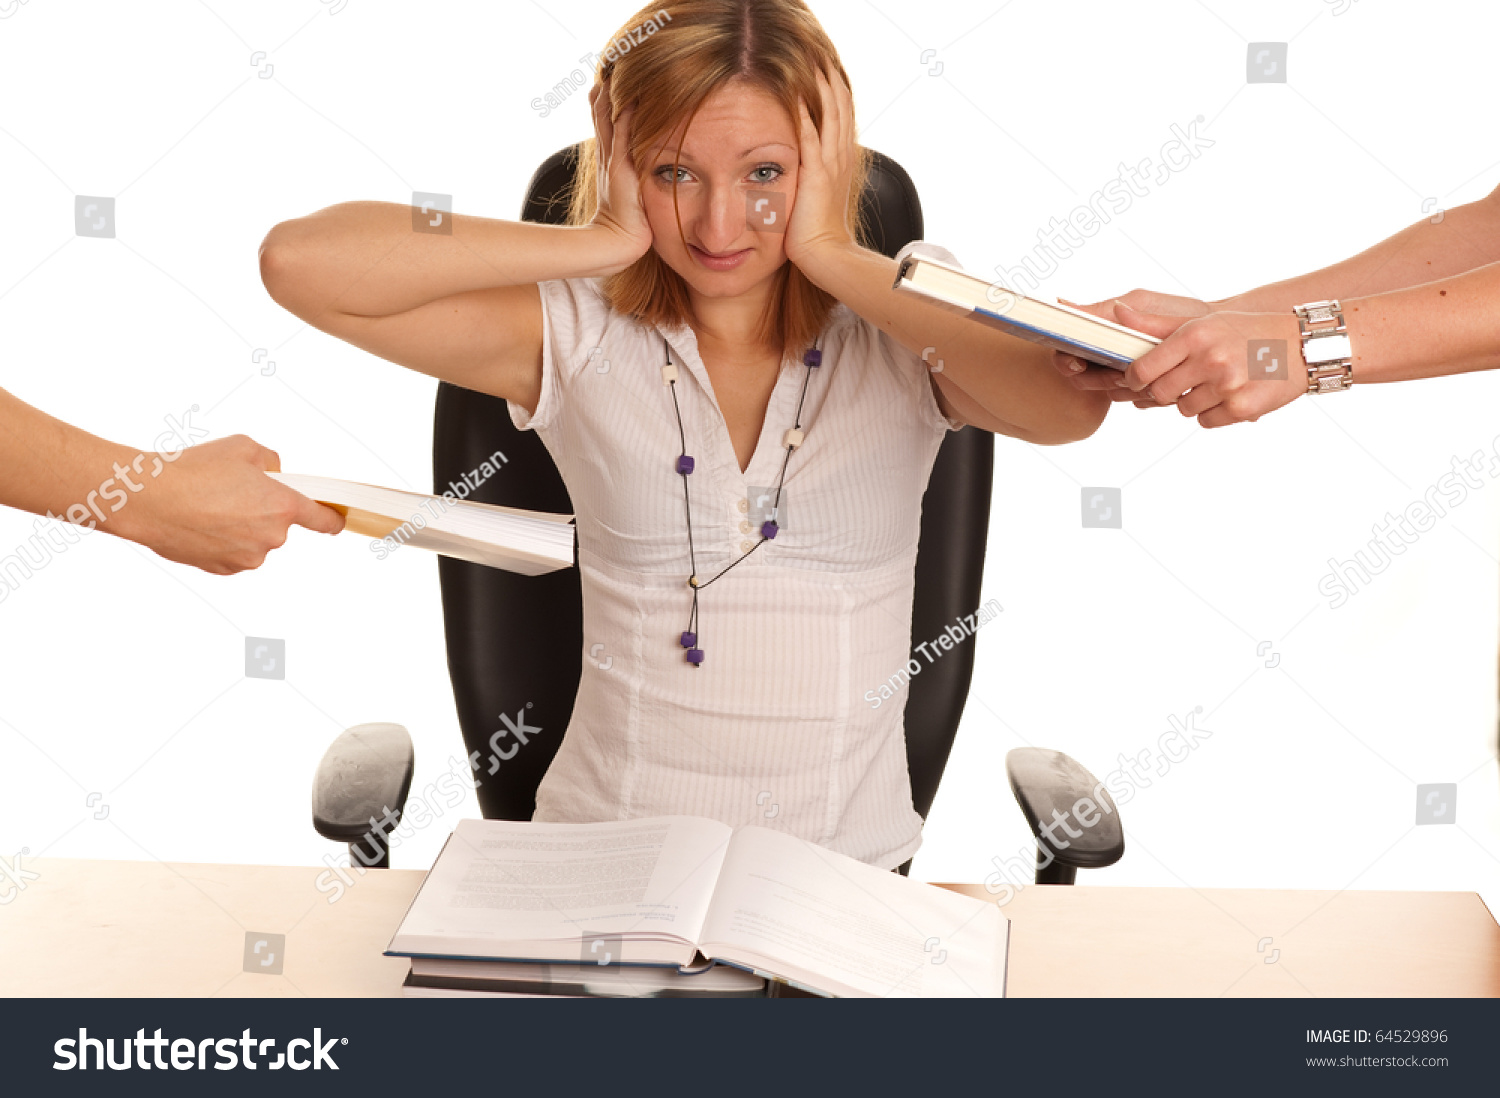 stress young business w much work stock photo  stress young business w too much work and under pressure and mobbing